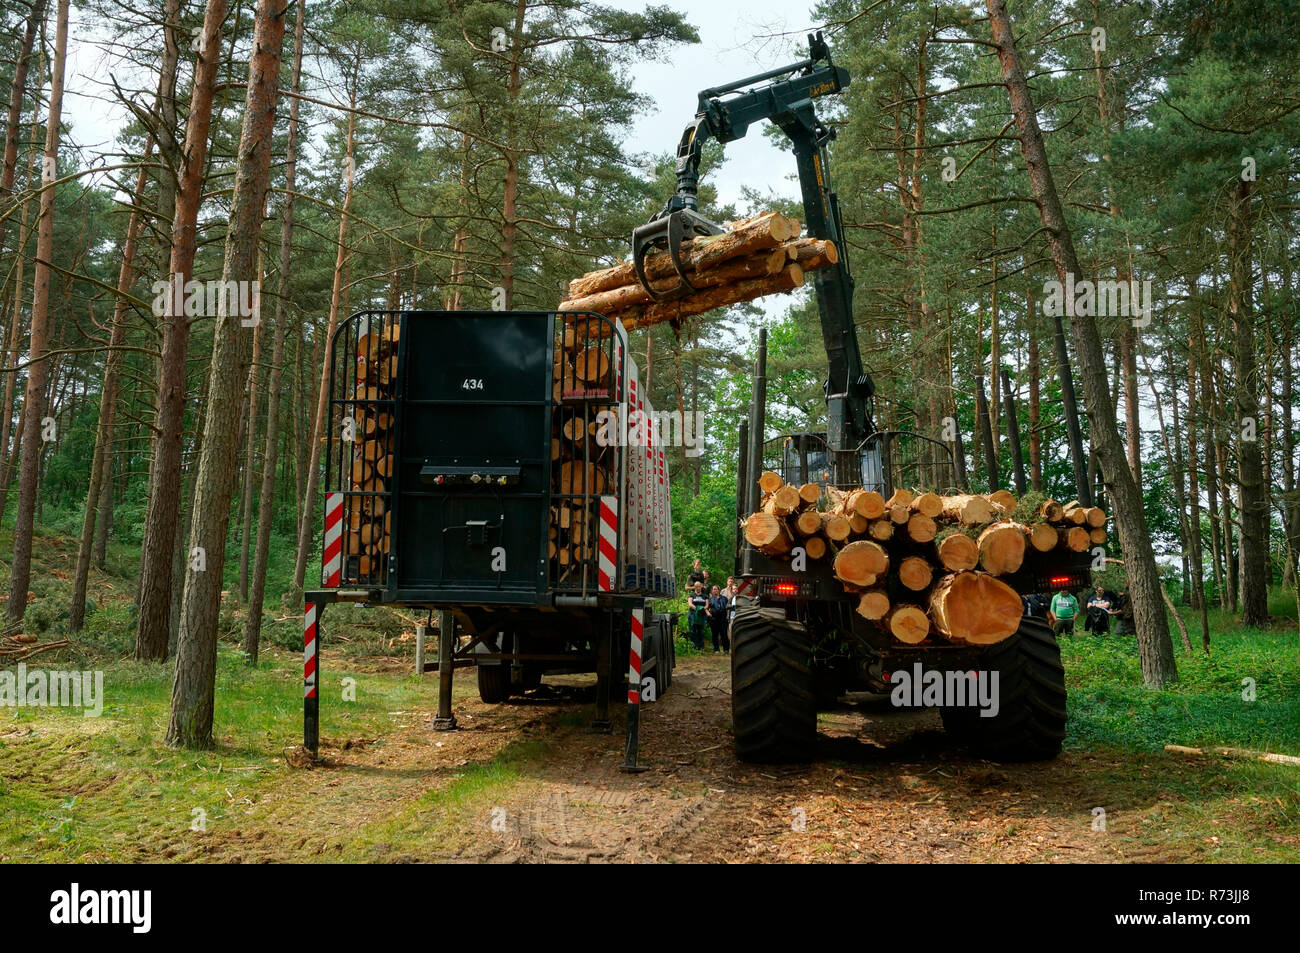 Forestry, forwarder, pine trunks,  (Pinus sylvestris), pine forest, forest technology, forest machinery, Sarenseck, Lower Saxony, Germany Stock Photo